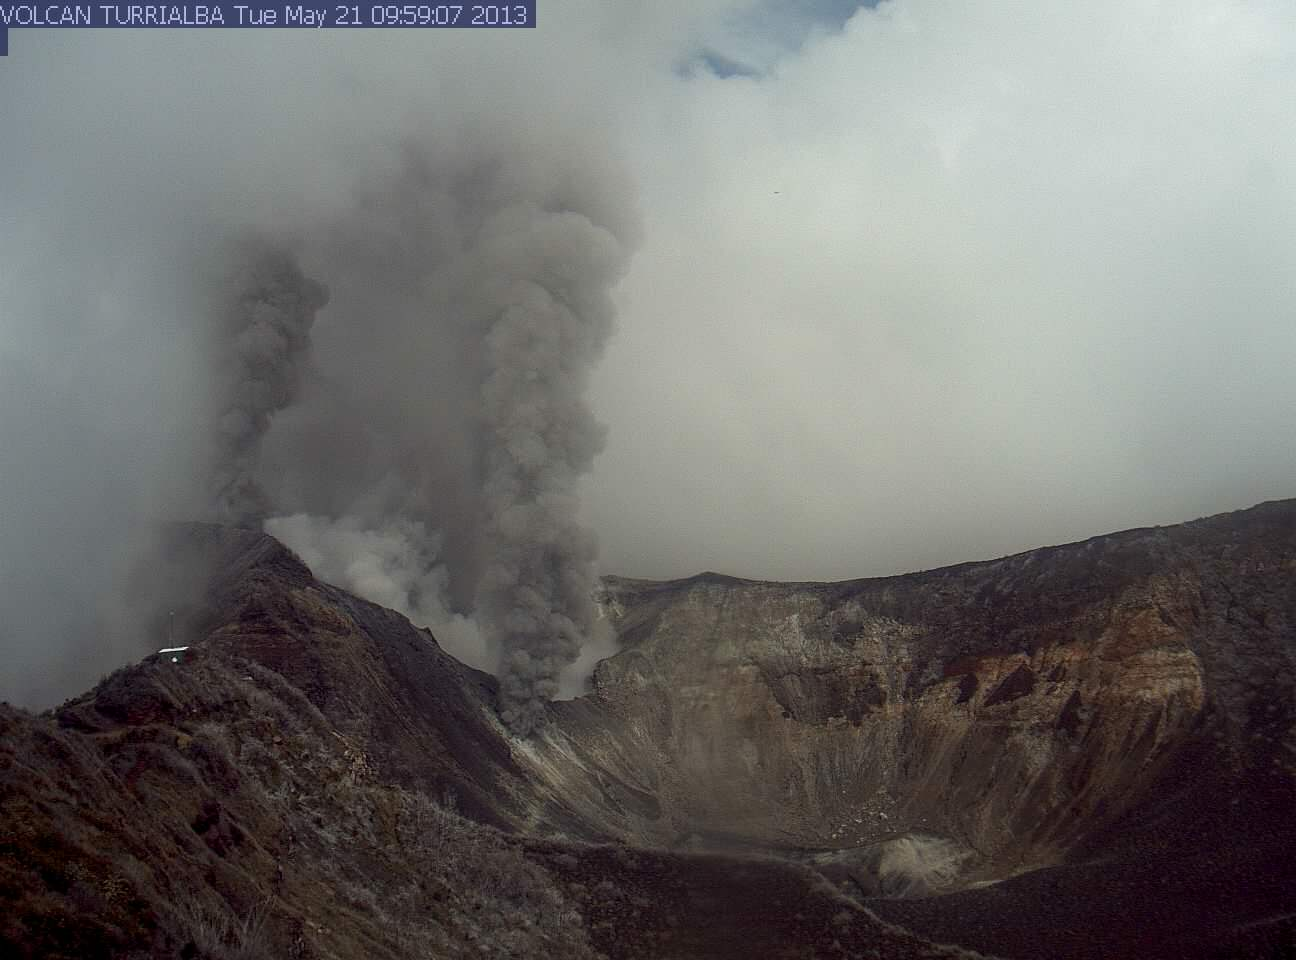 Ash emissions from Turrialba volcano (OVSICORI webcam)